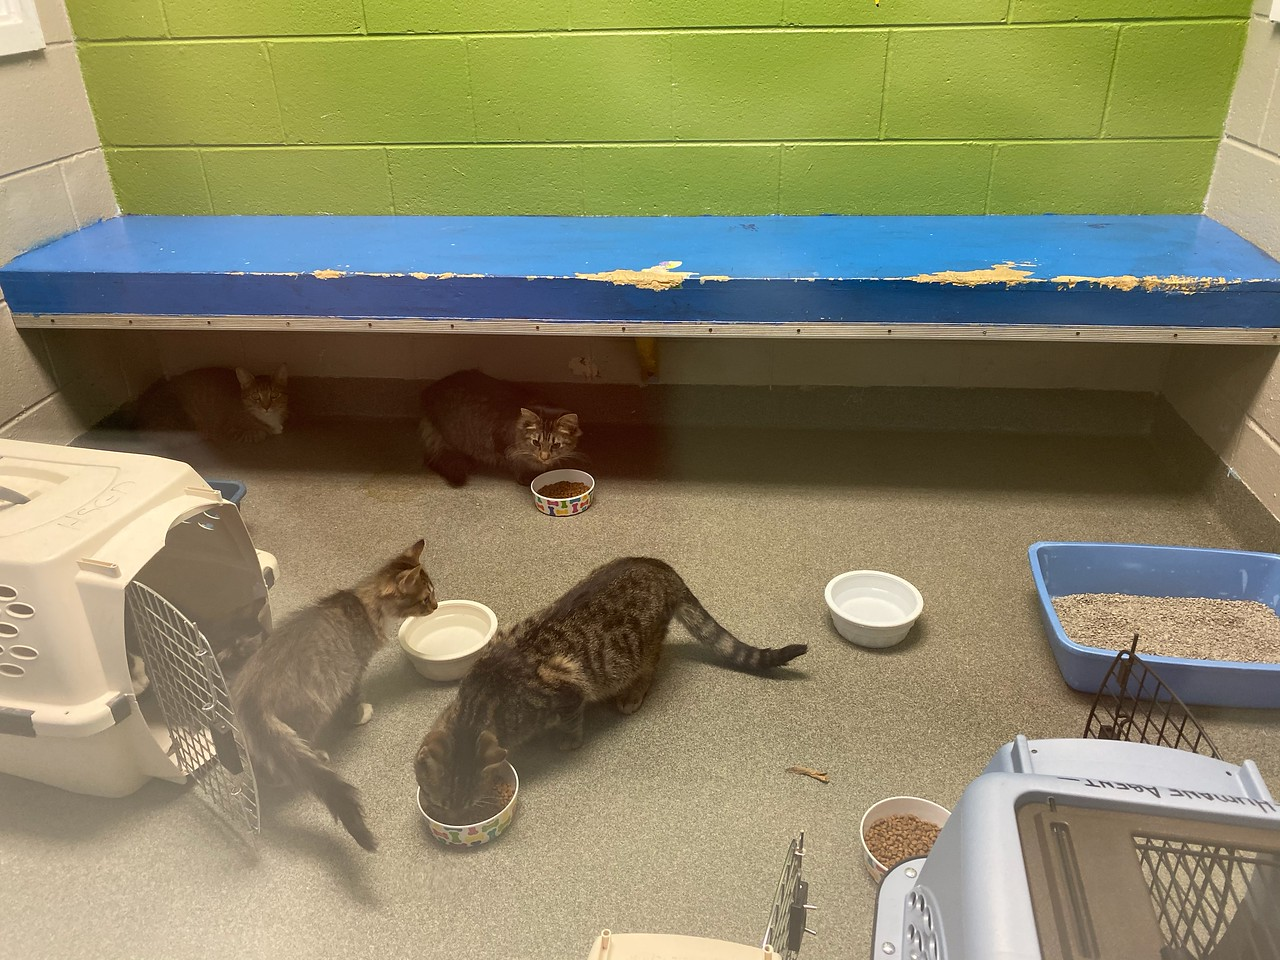 Abandoned cats 11-11